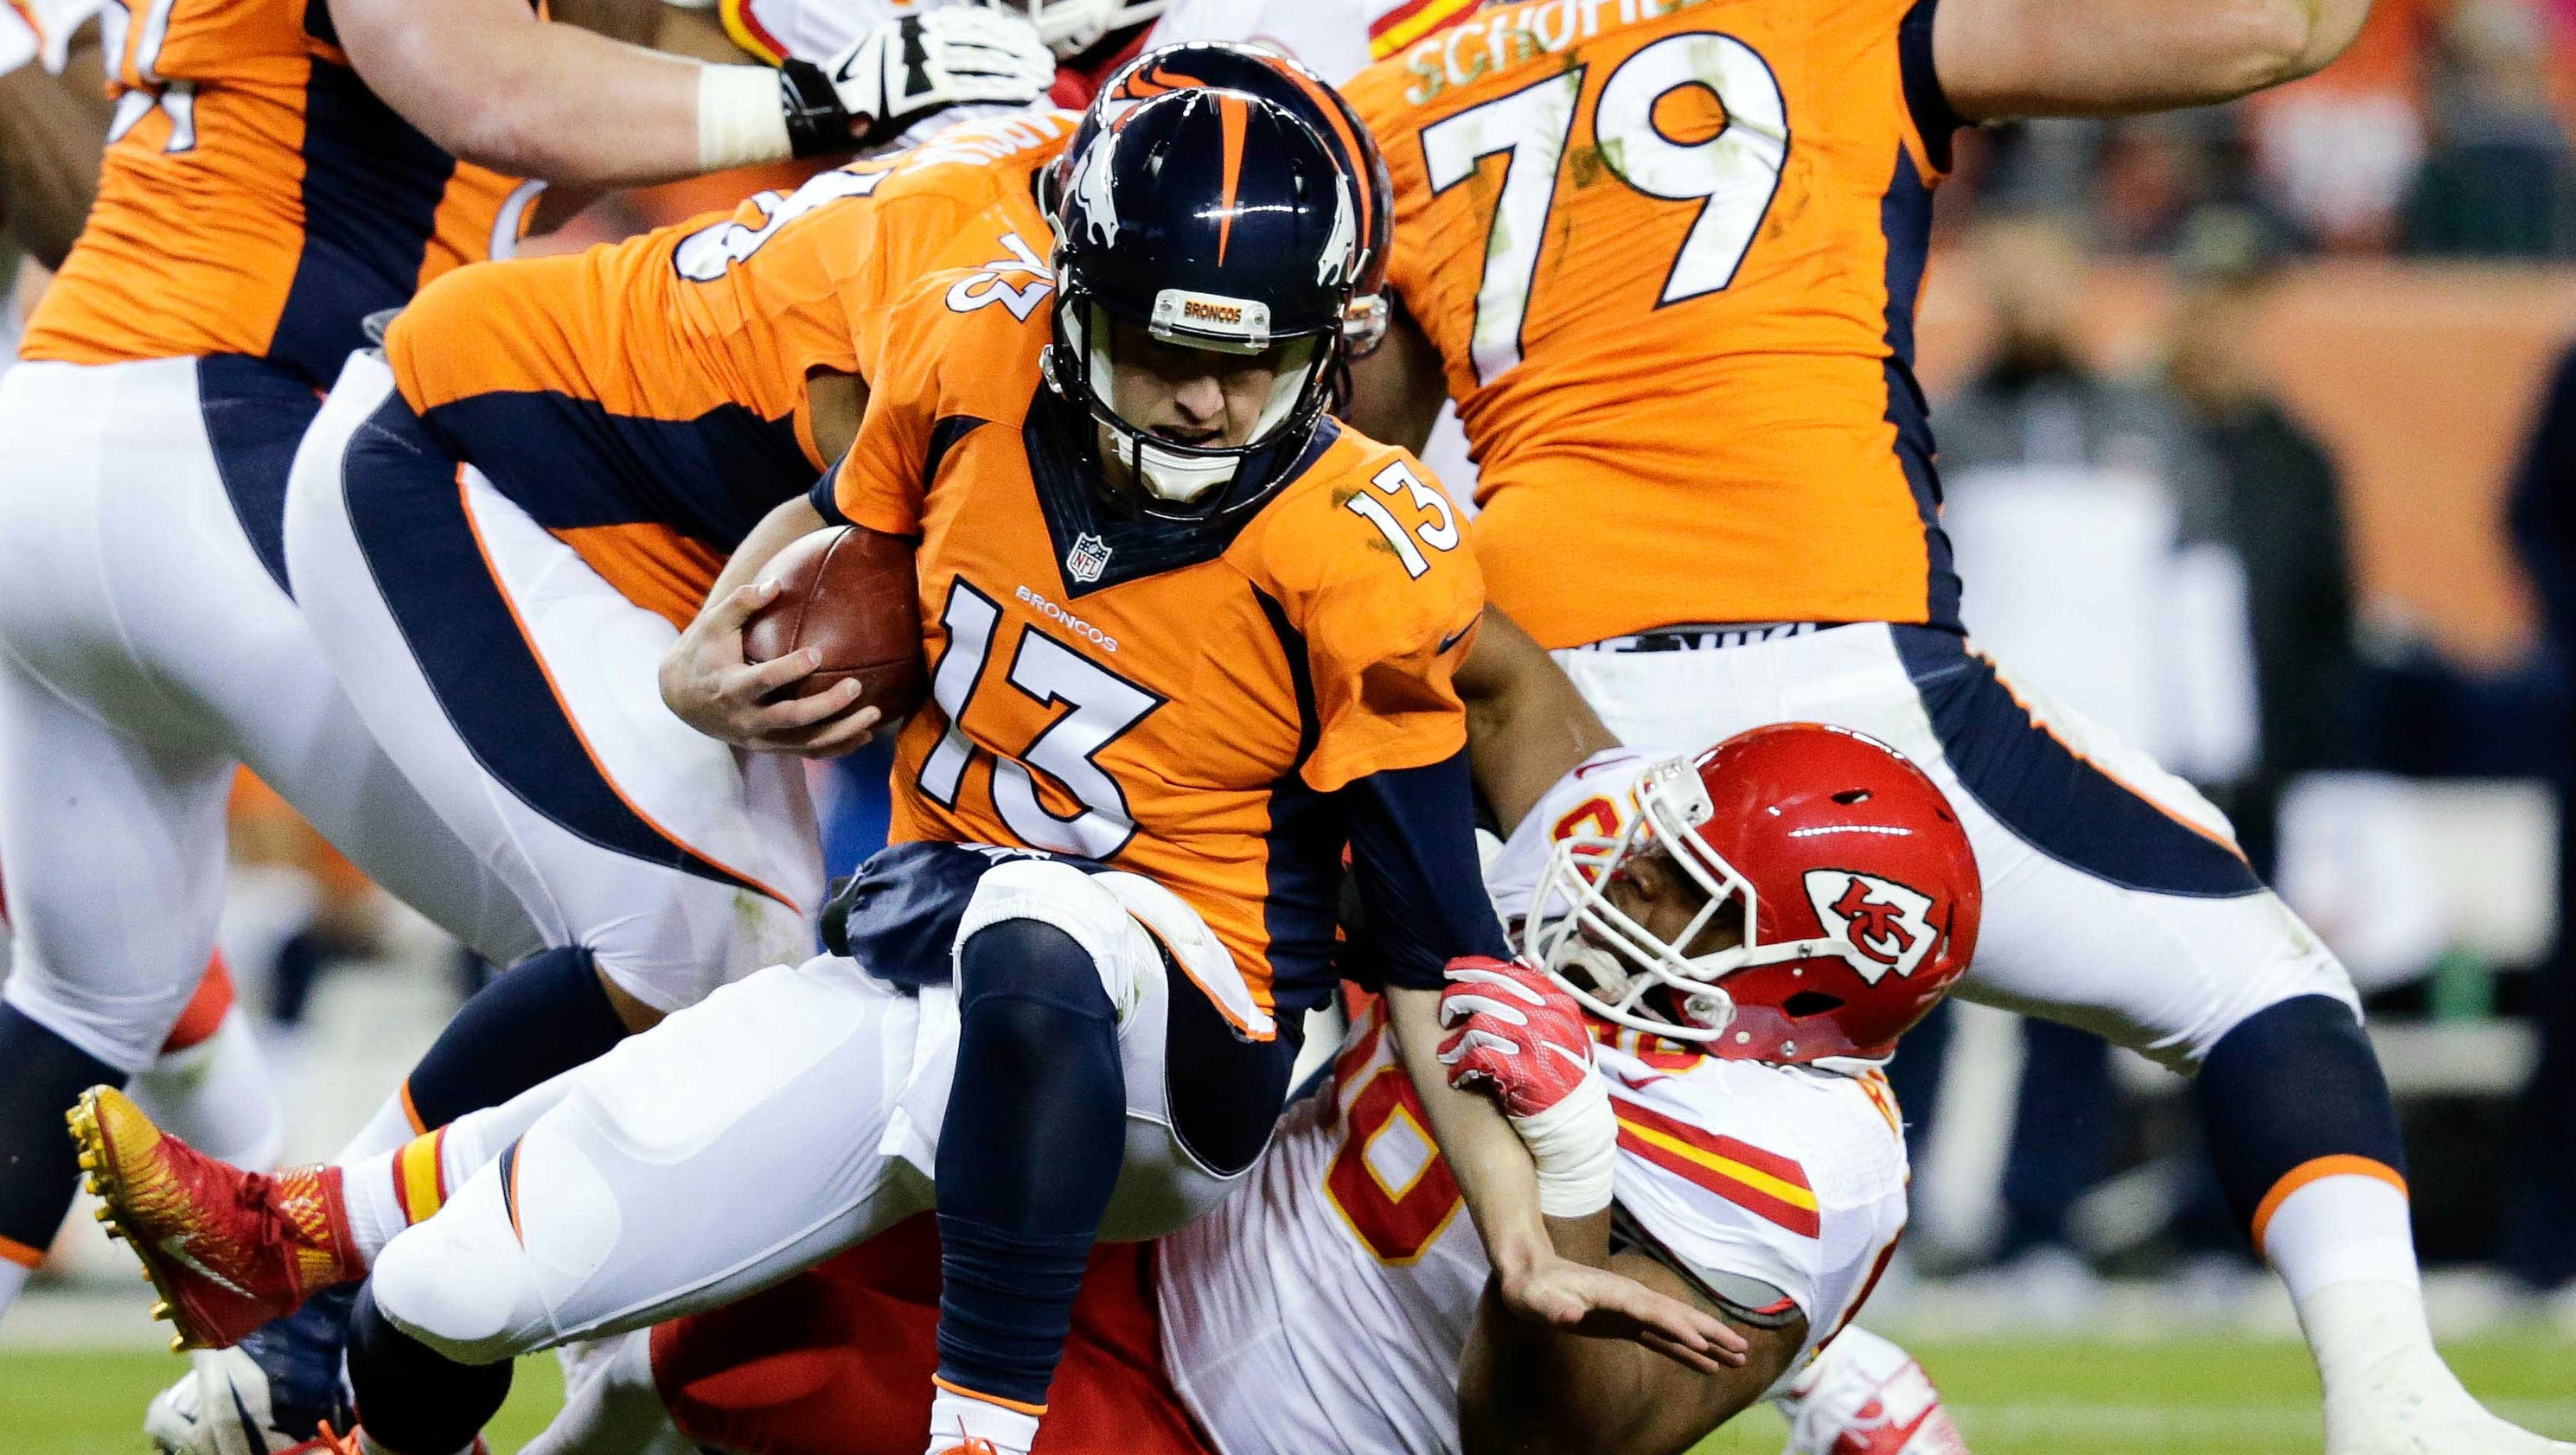 636162826340090551-usp-nfl-kansas-city-chiefs-at-denver-broncos